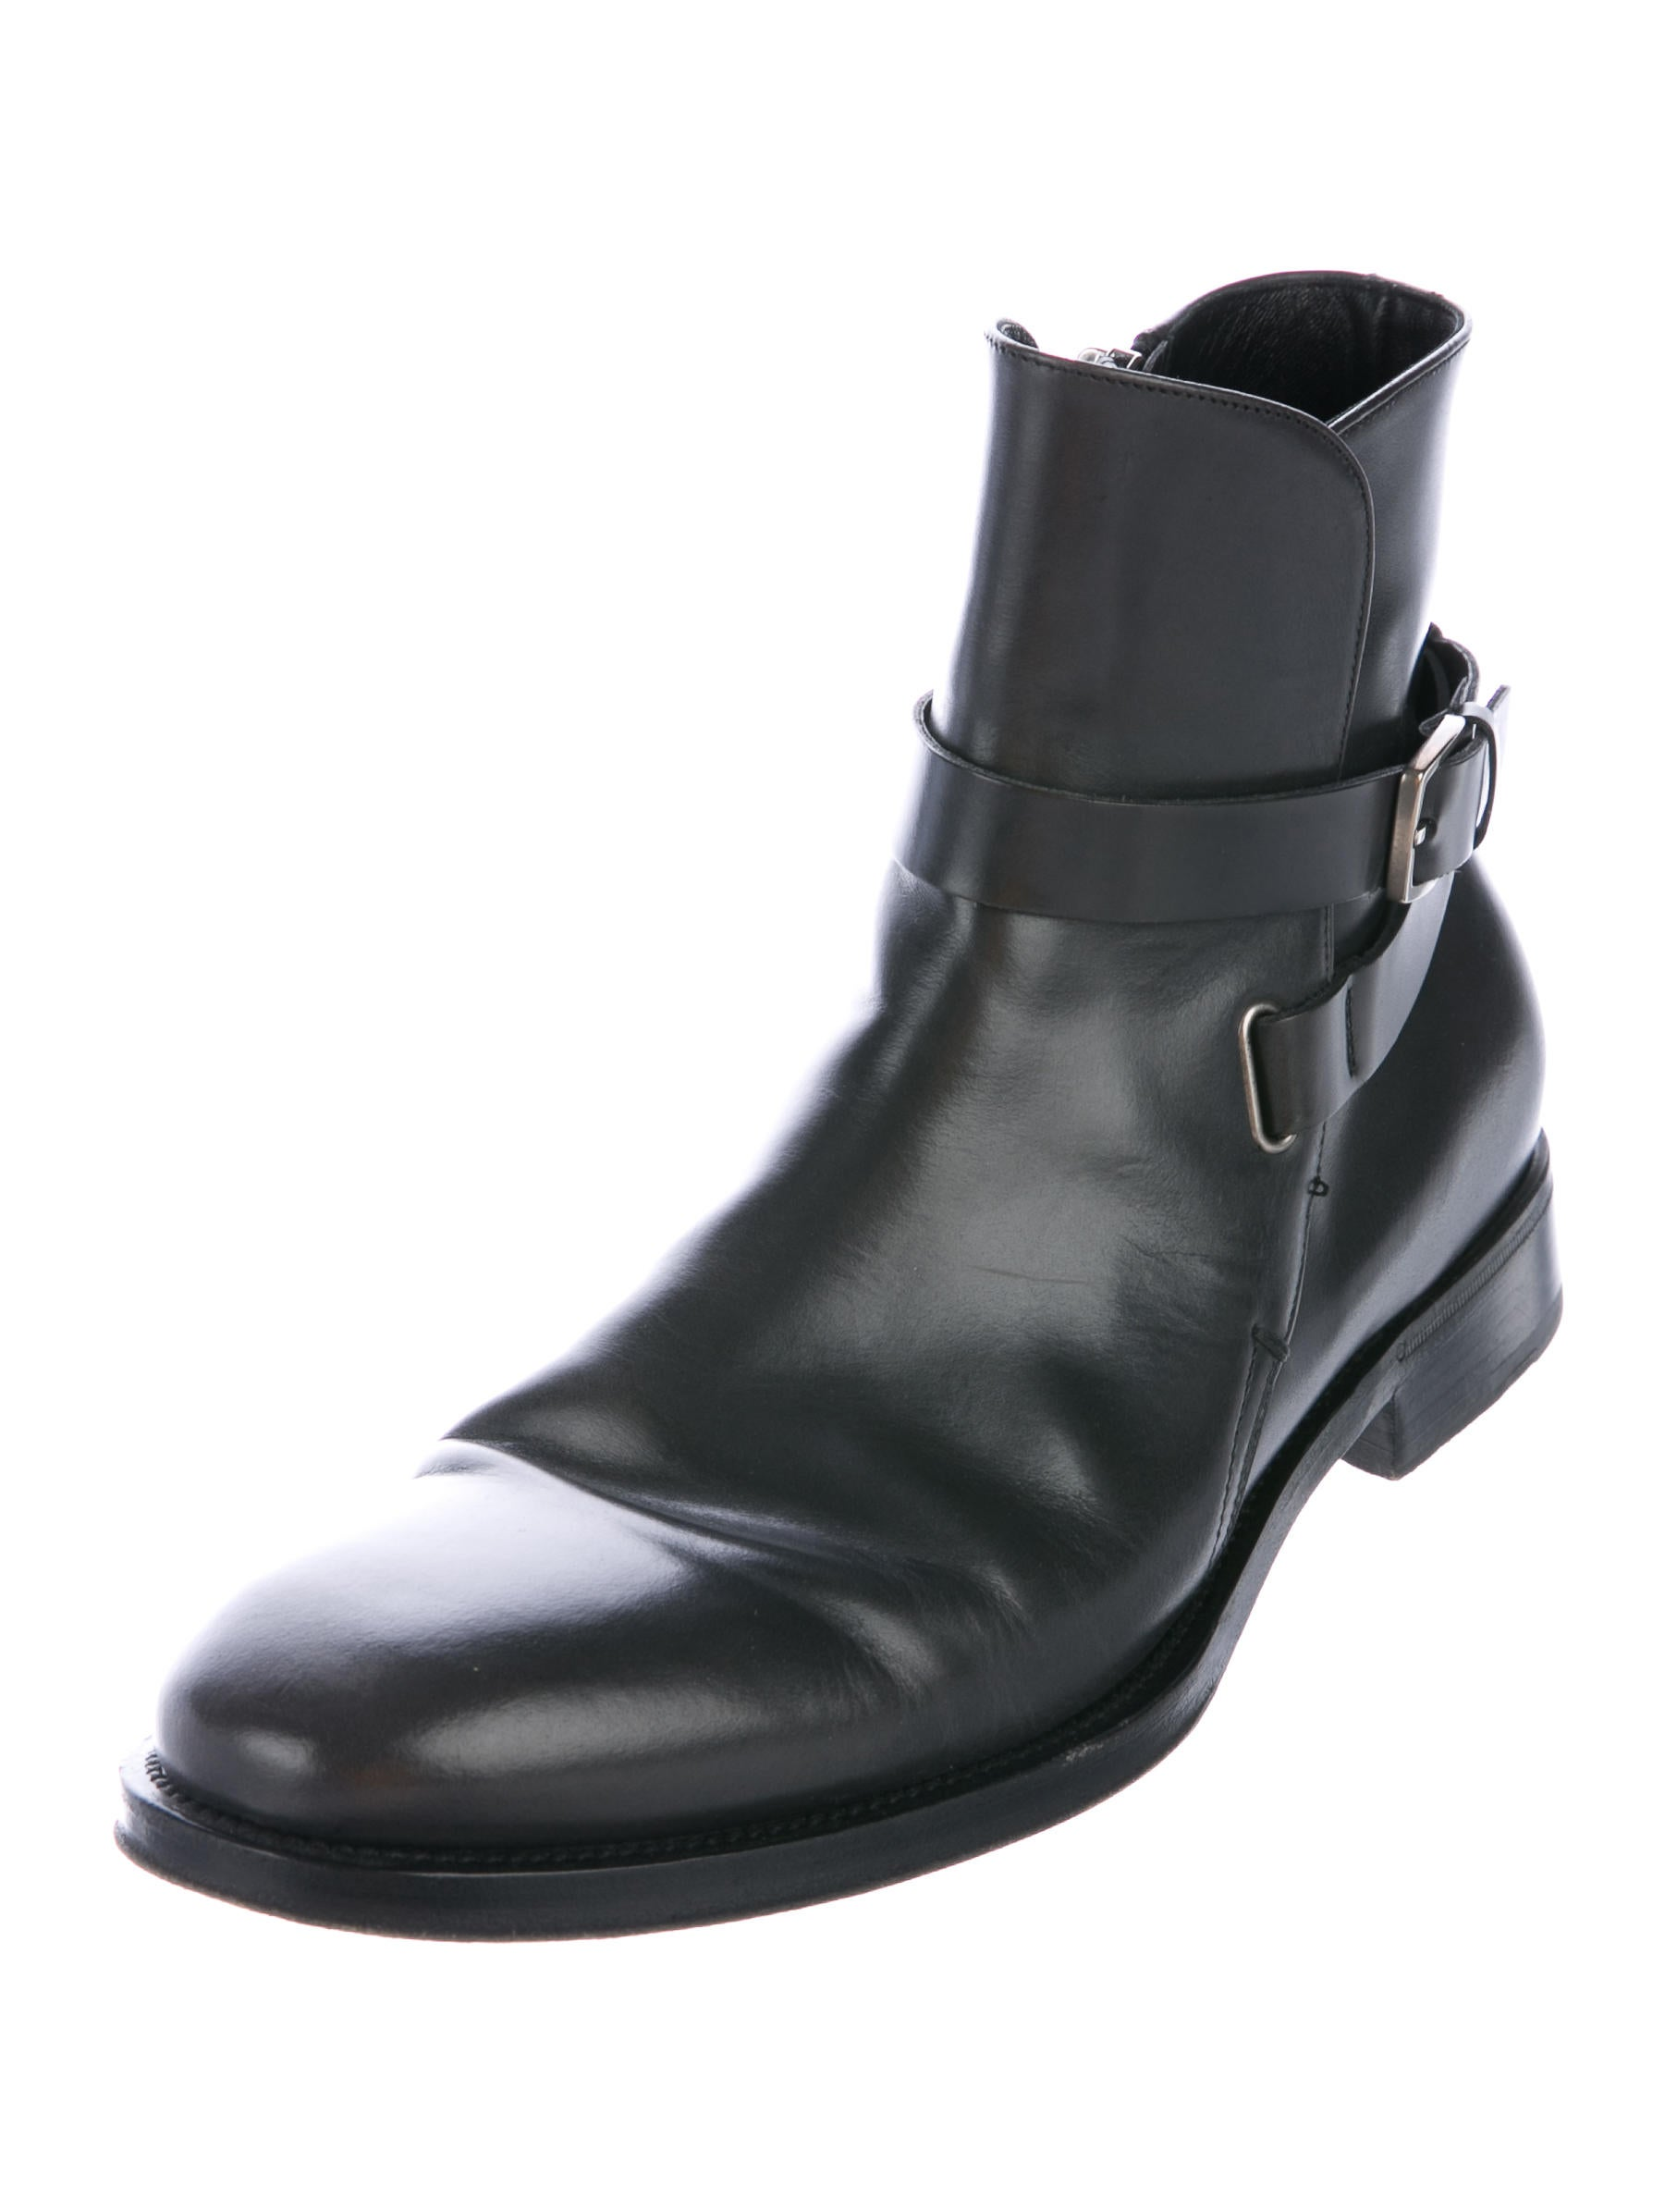 salvatore ferragamo leather ankle boots shoes sal54428